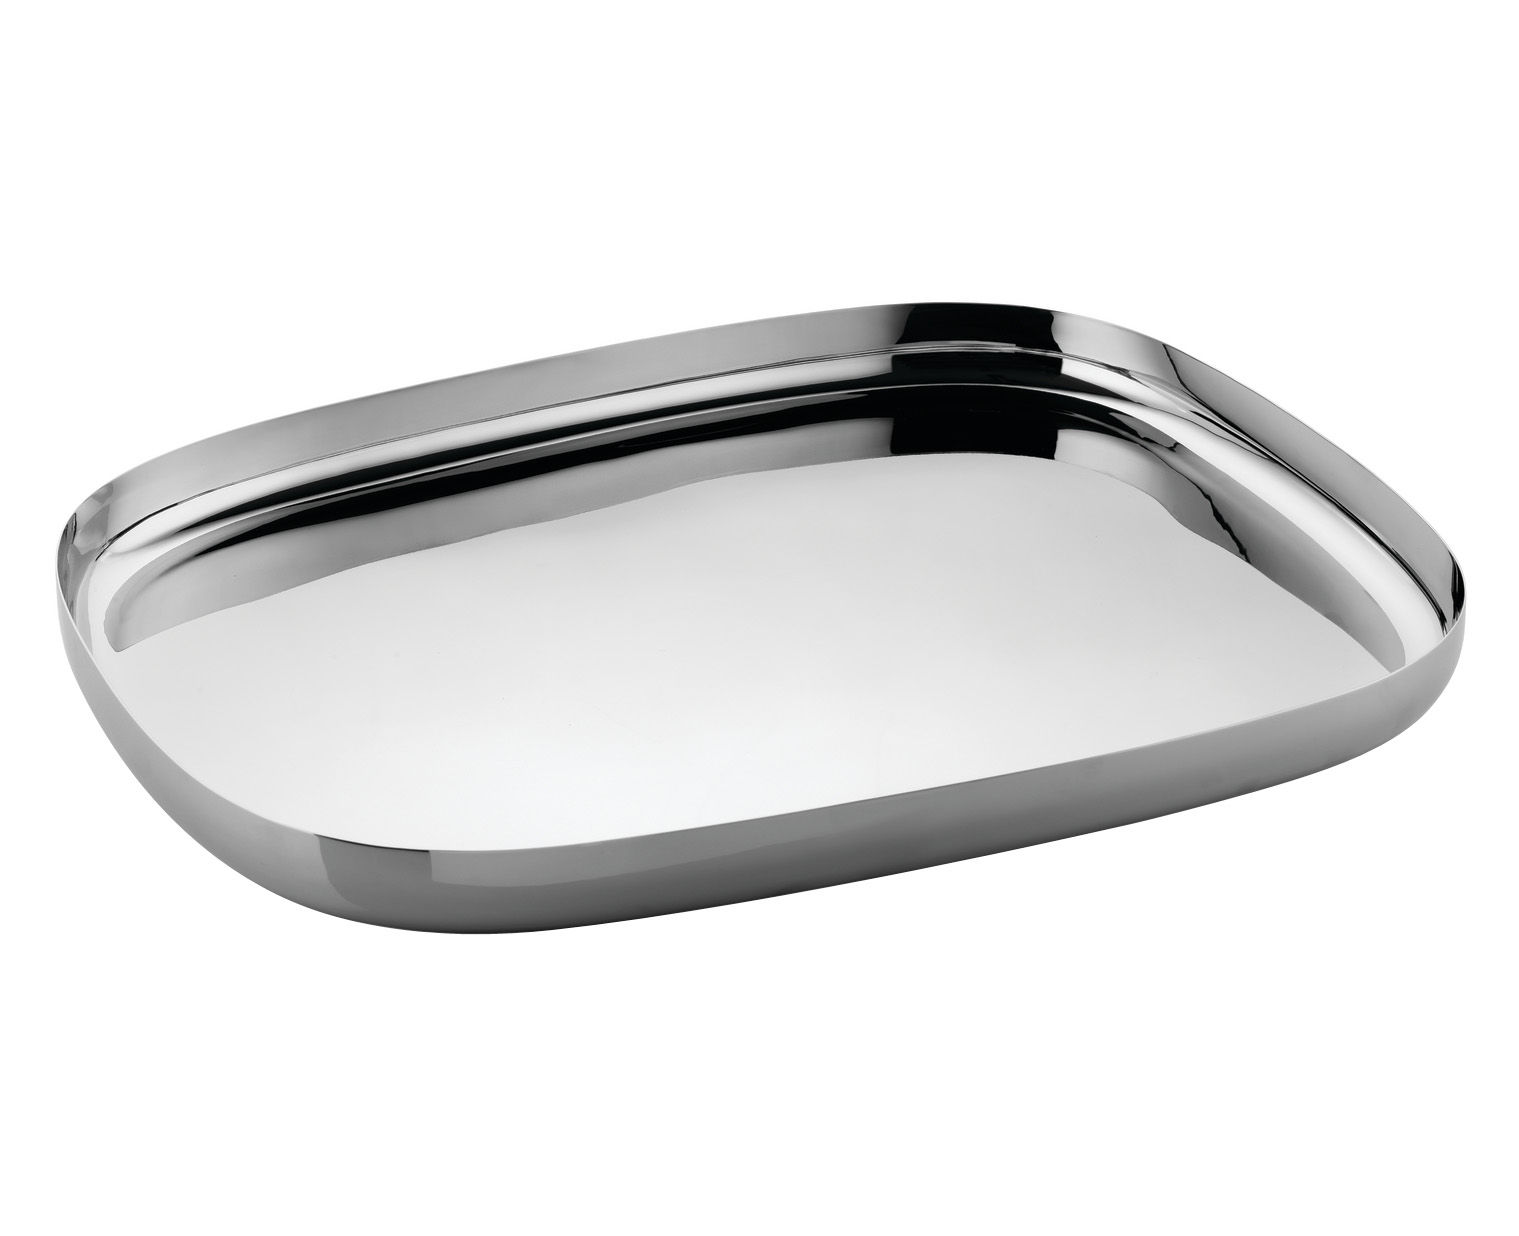 ovale tray polished stainless steel by alessi. Black Bedroom Furniture Sets. Home Design Ideas